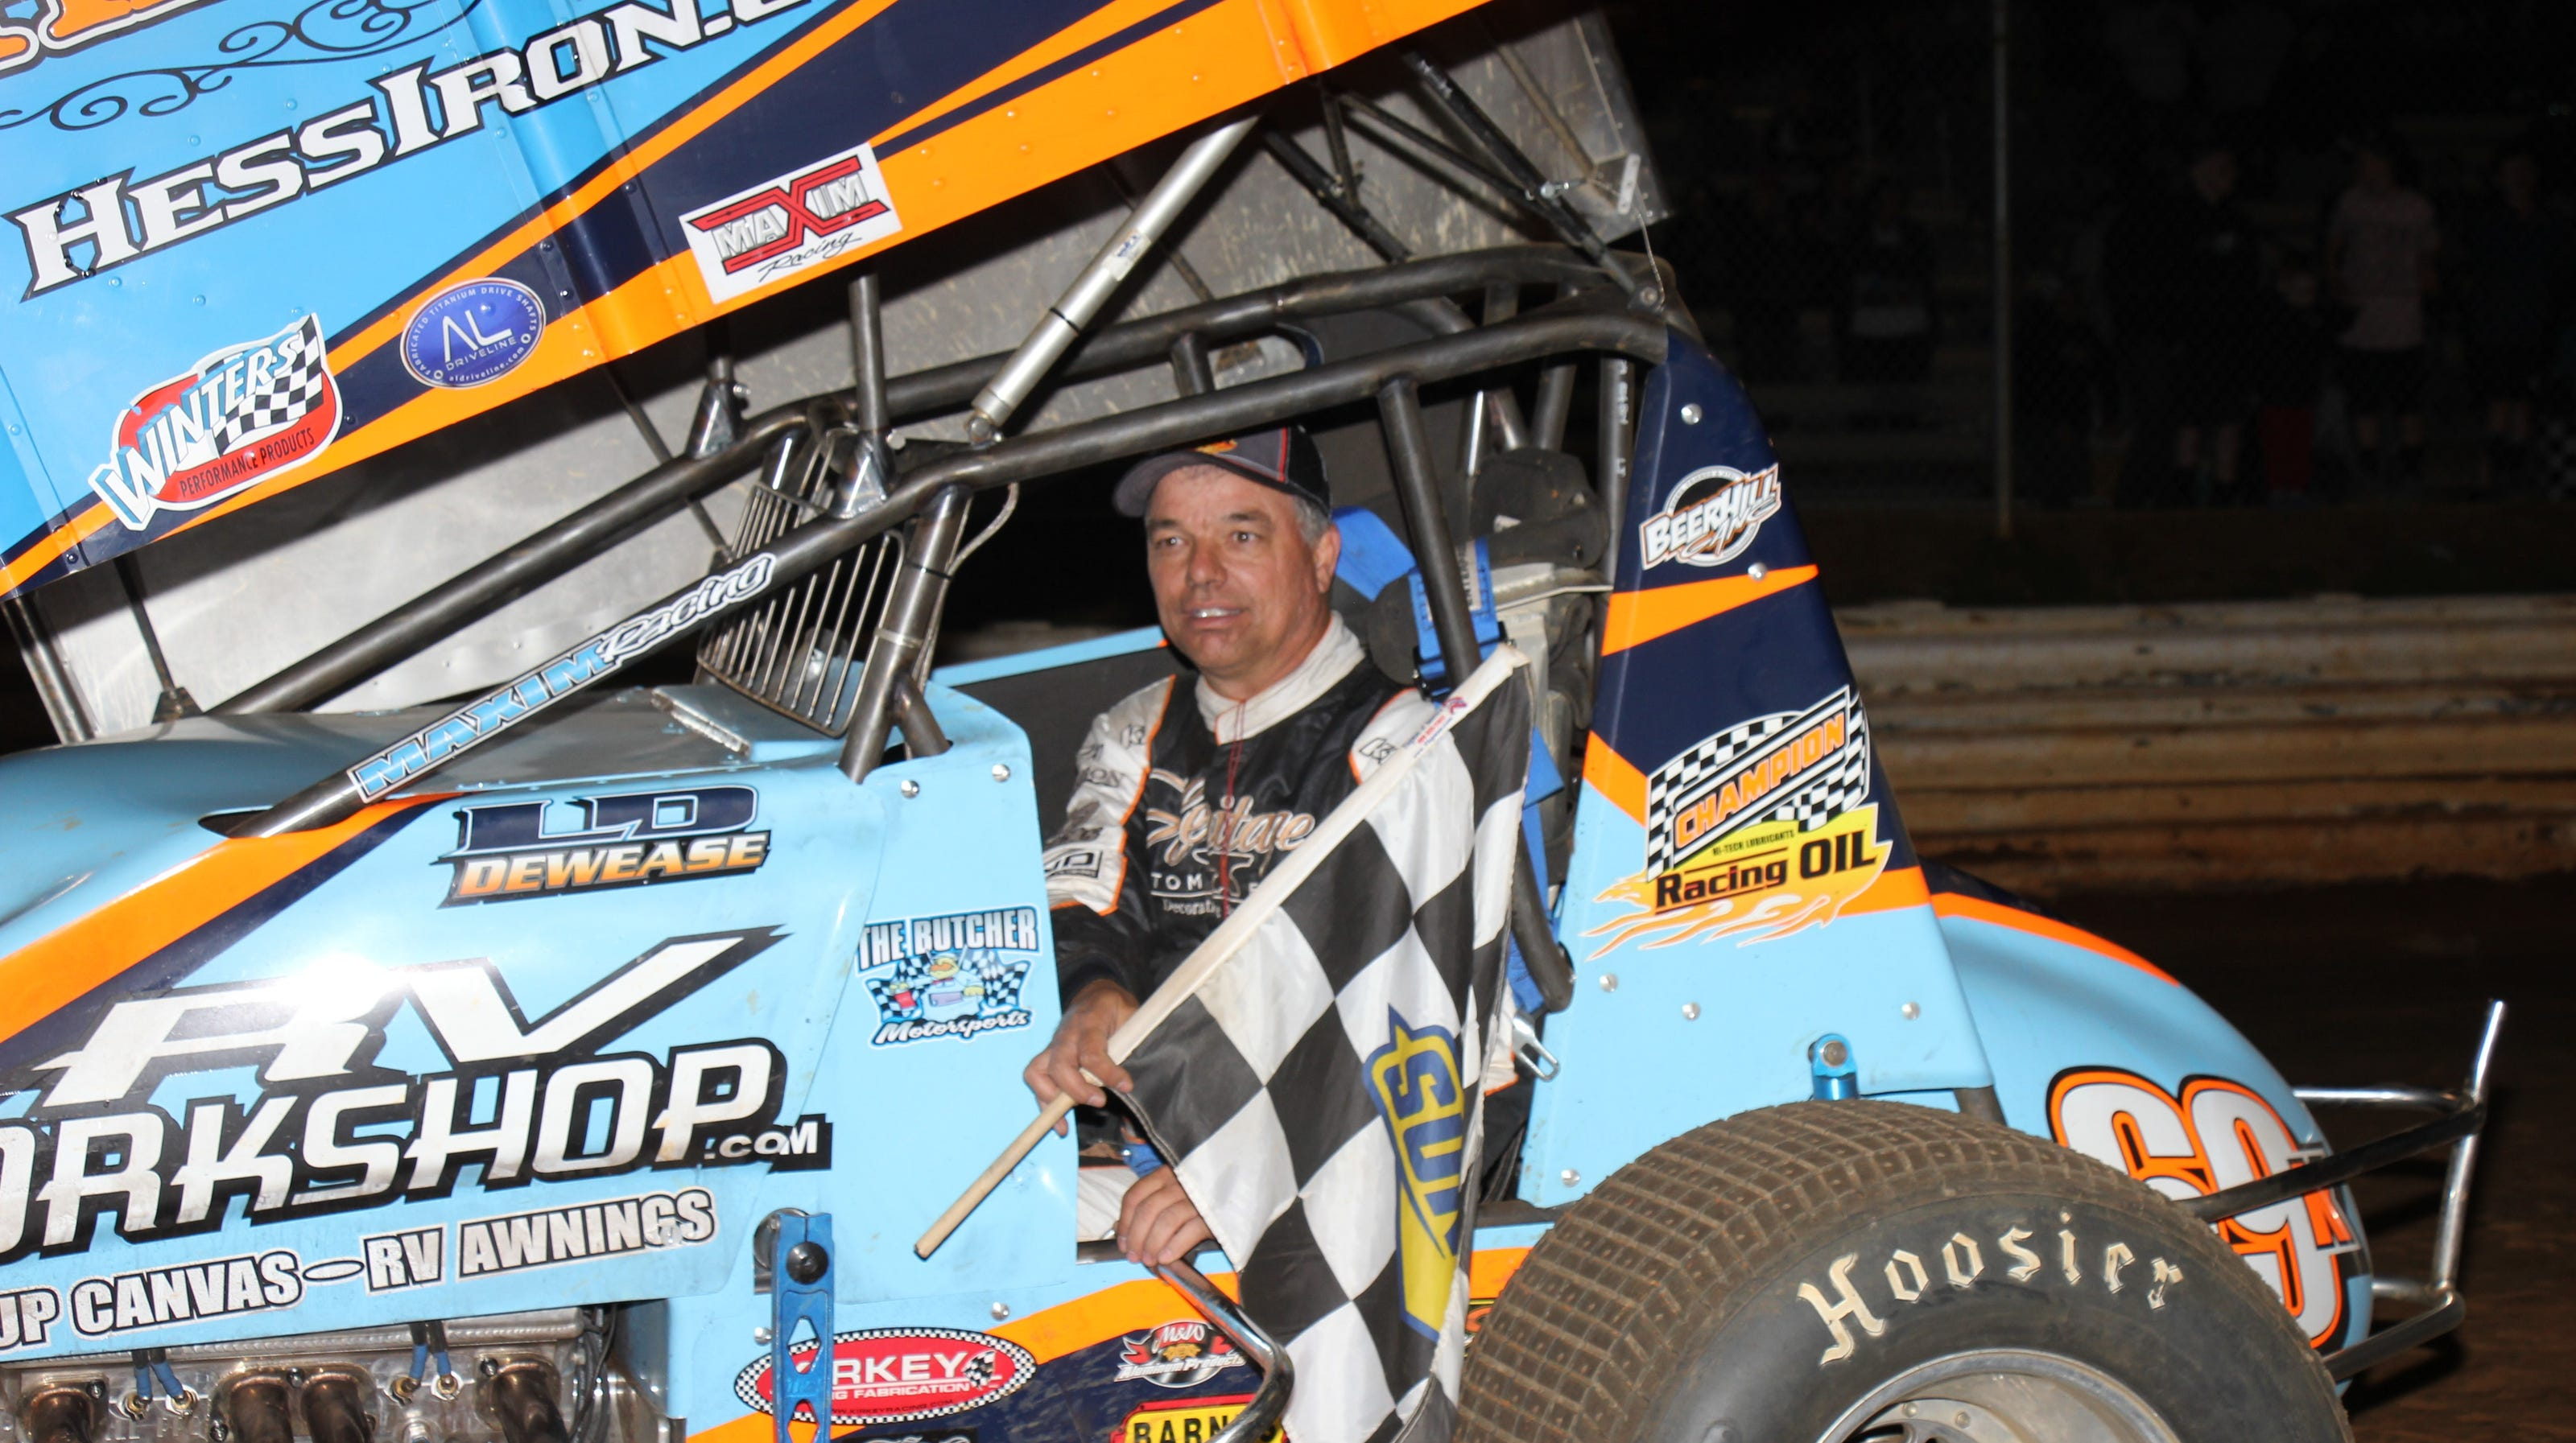 HOUSEHOLDER; Big Money Line During Pennsylvania Sprint Car